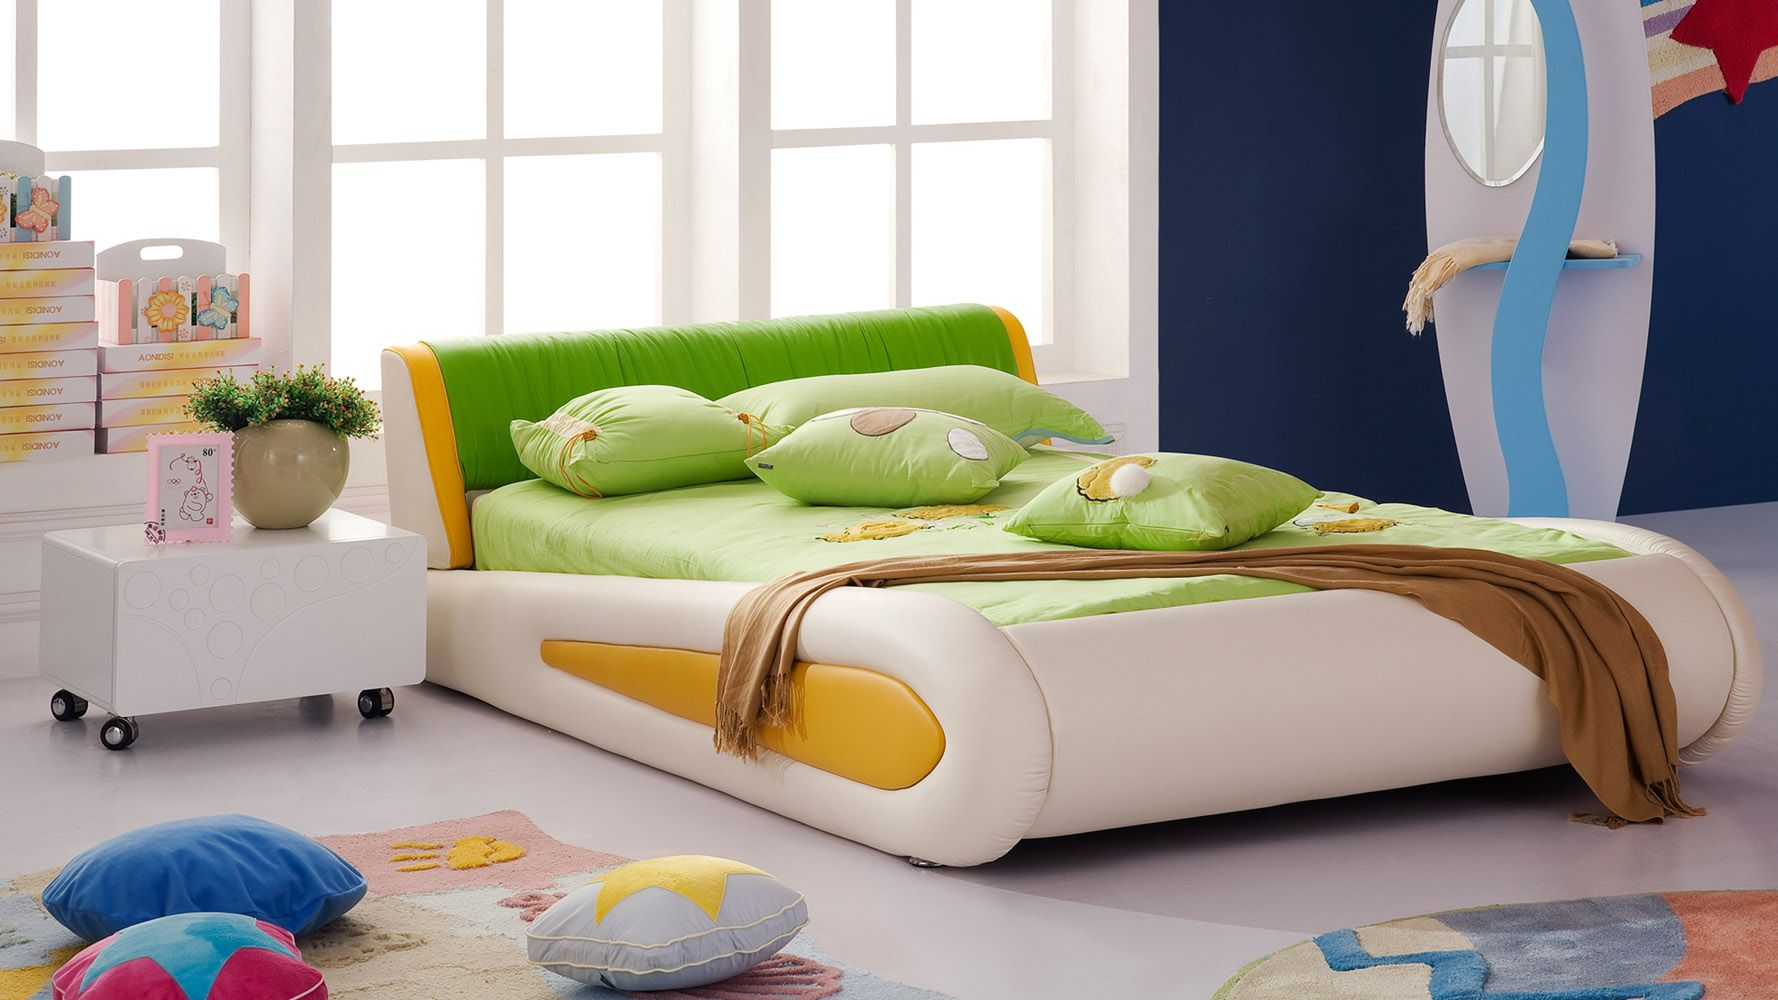 contemporary kids bedroom furniture green. Shop Green Leather Kermit Kids Frog Bed And Other Modern Contemporary Home Office Furniture. Browse Our Selection Of Beds From Zuri Bedroom Furniture A